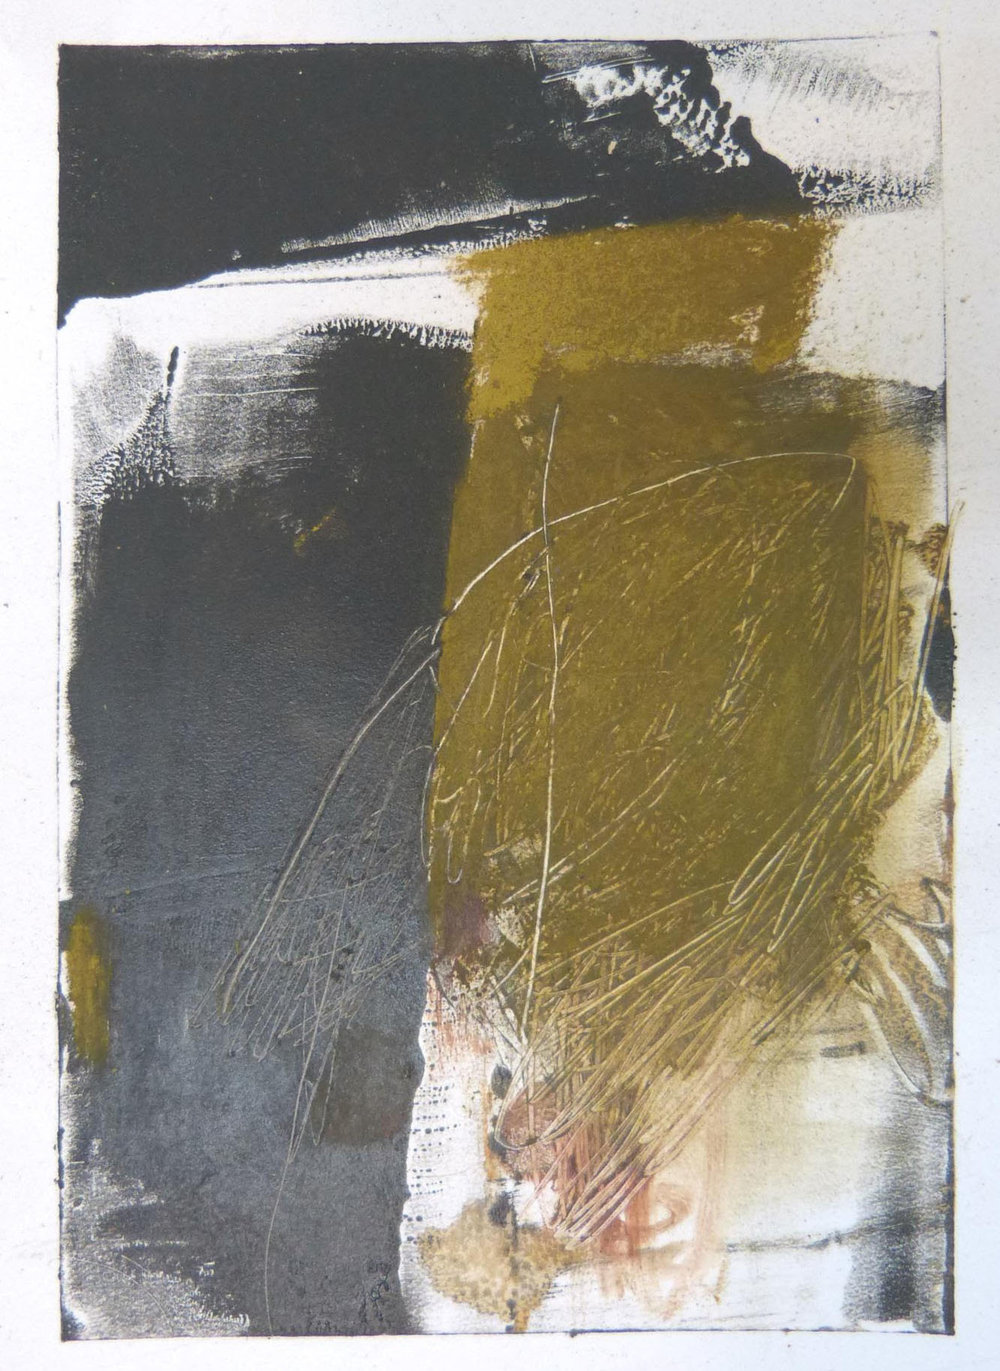 Rebecca Crowell, Ballinglen Series: 2, Oil and cold wax on paper, 8 x 10, $200